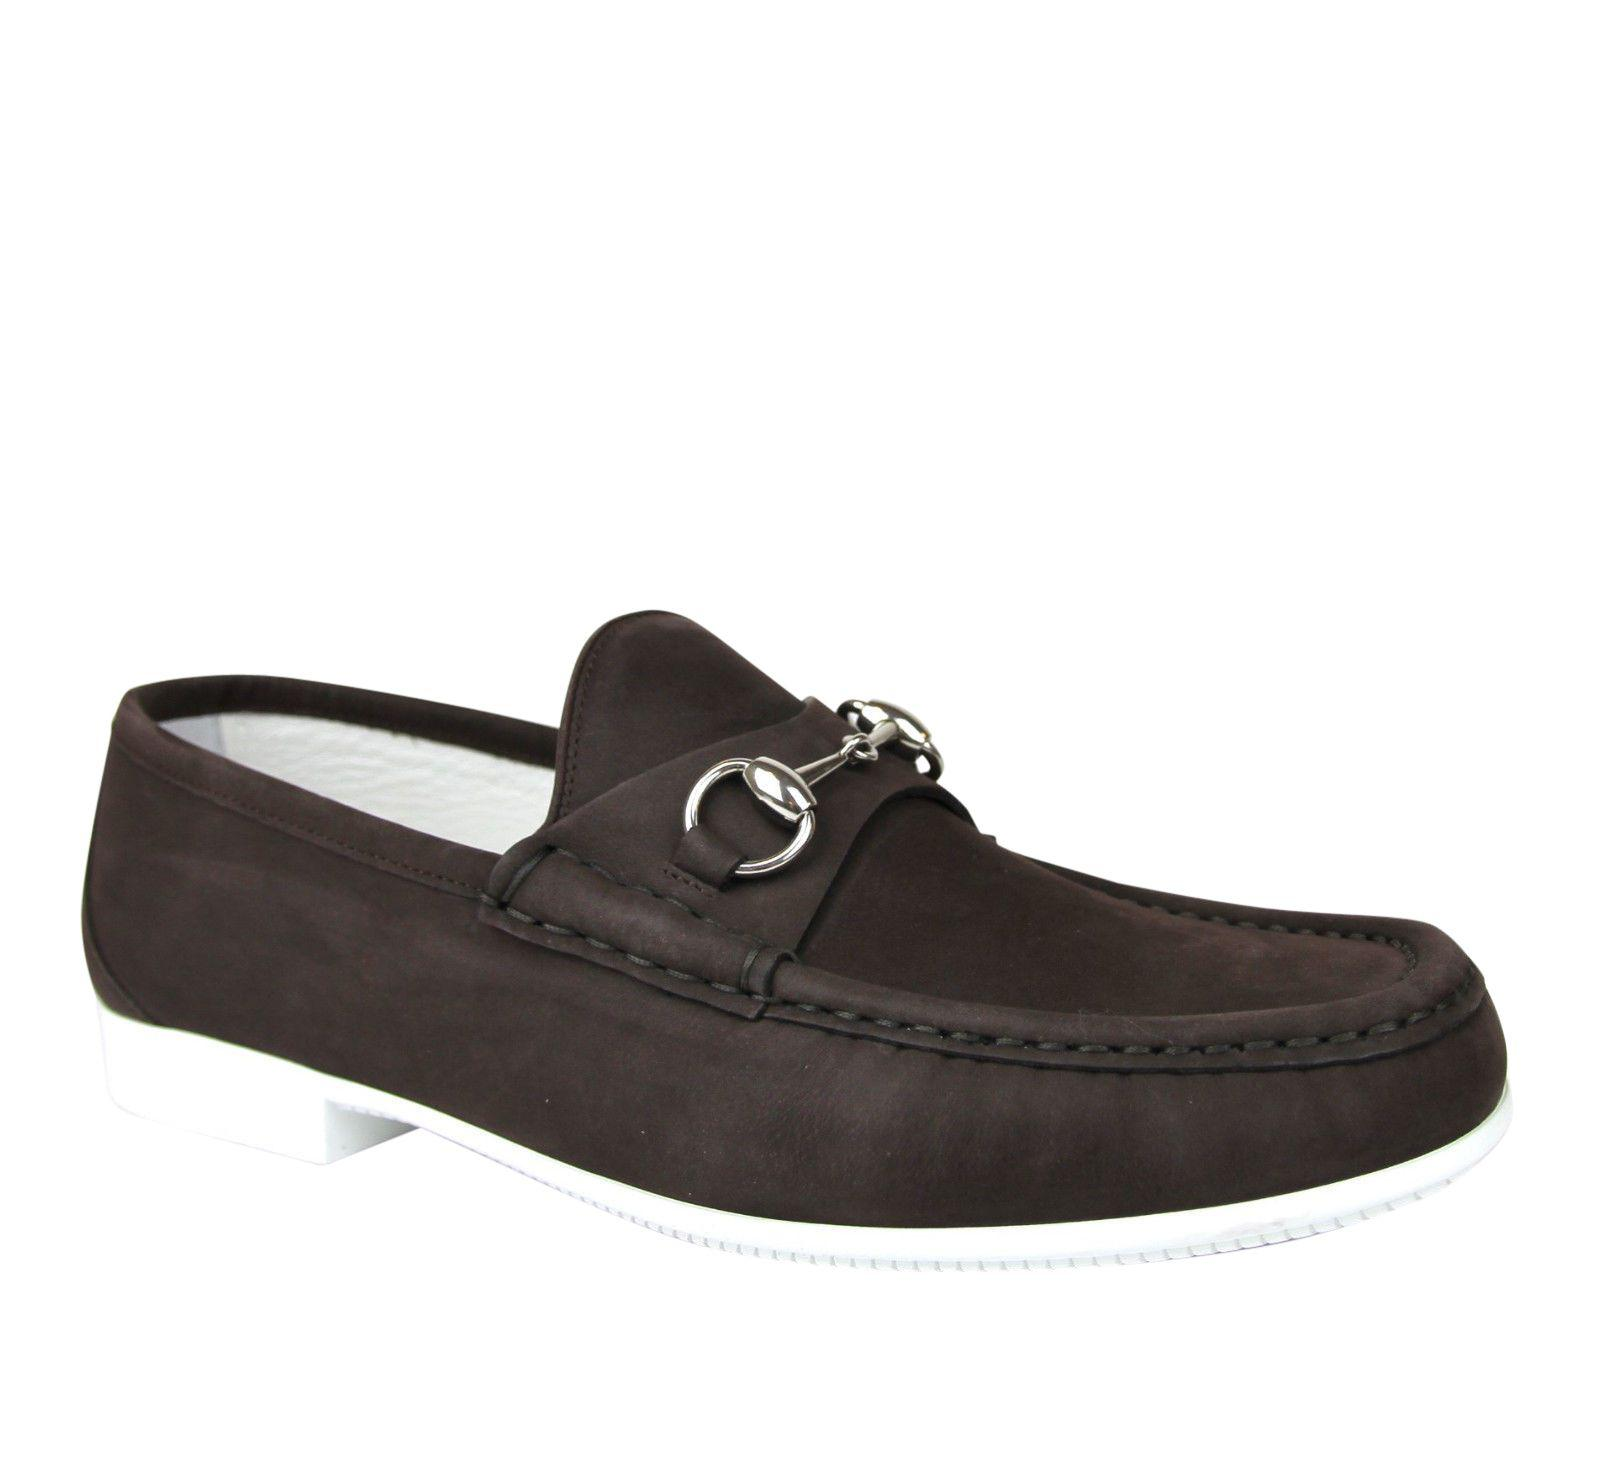 932723a753aed Lyst - Gucci Moccasin Suede Horsebit Loafer 337060 Bho00 in Brown ...